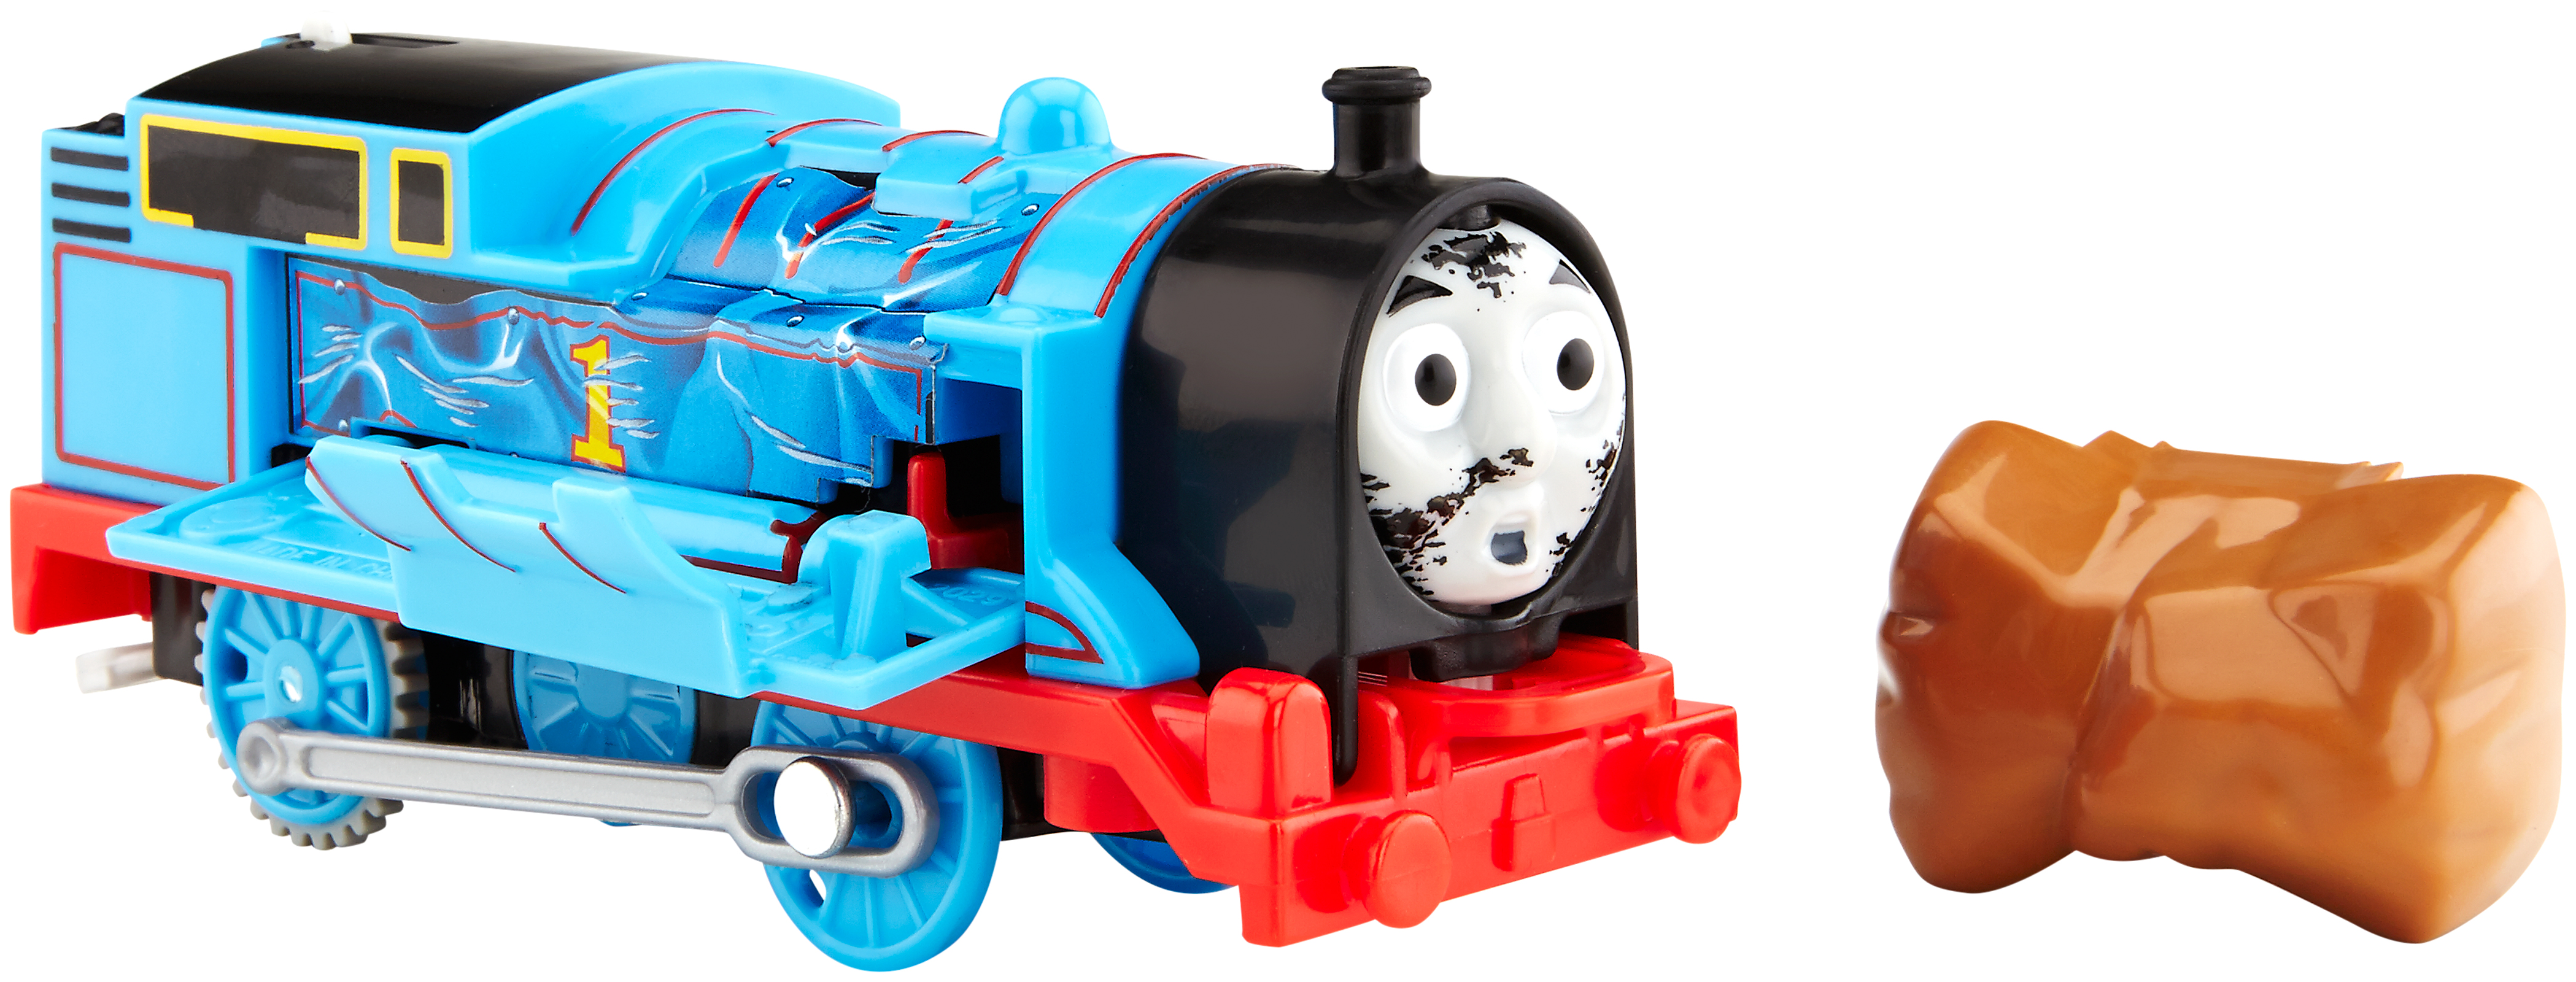 File:TrackMaster(Revolution)CrashandRepairThomas(Crashed).jpg